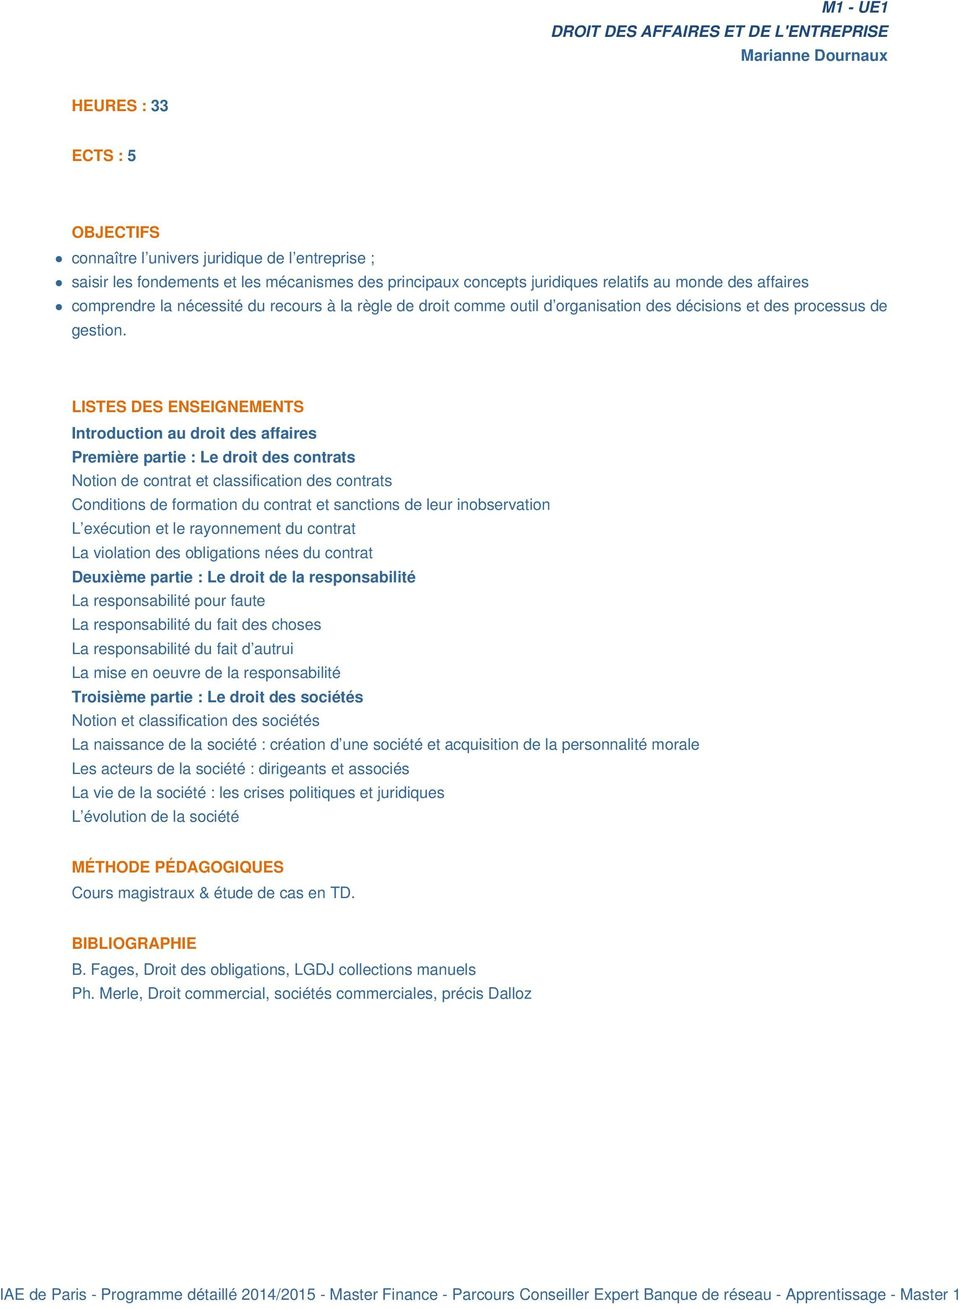 Introduction au droit des affaires Première partie : Le droit des contrats Notion de contrat et classification des contrats Conditions de formation du contrat et sanctions de leur inobservation L